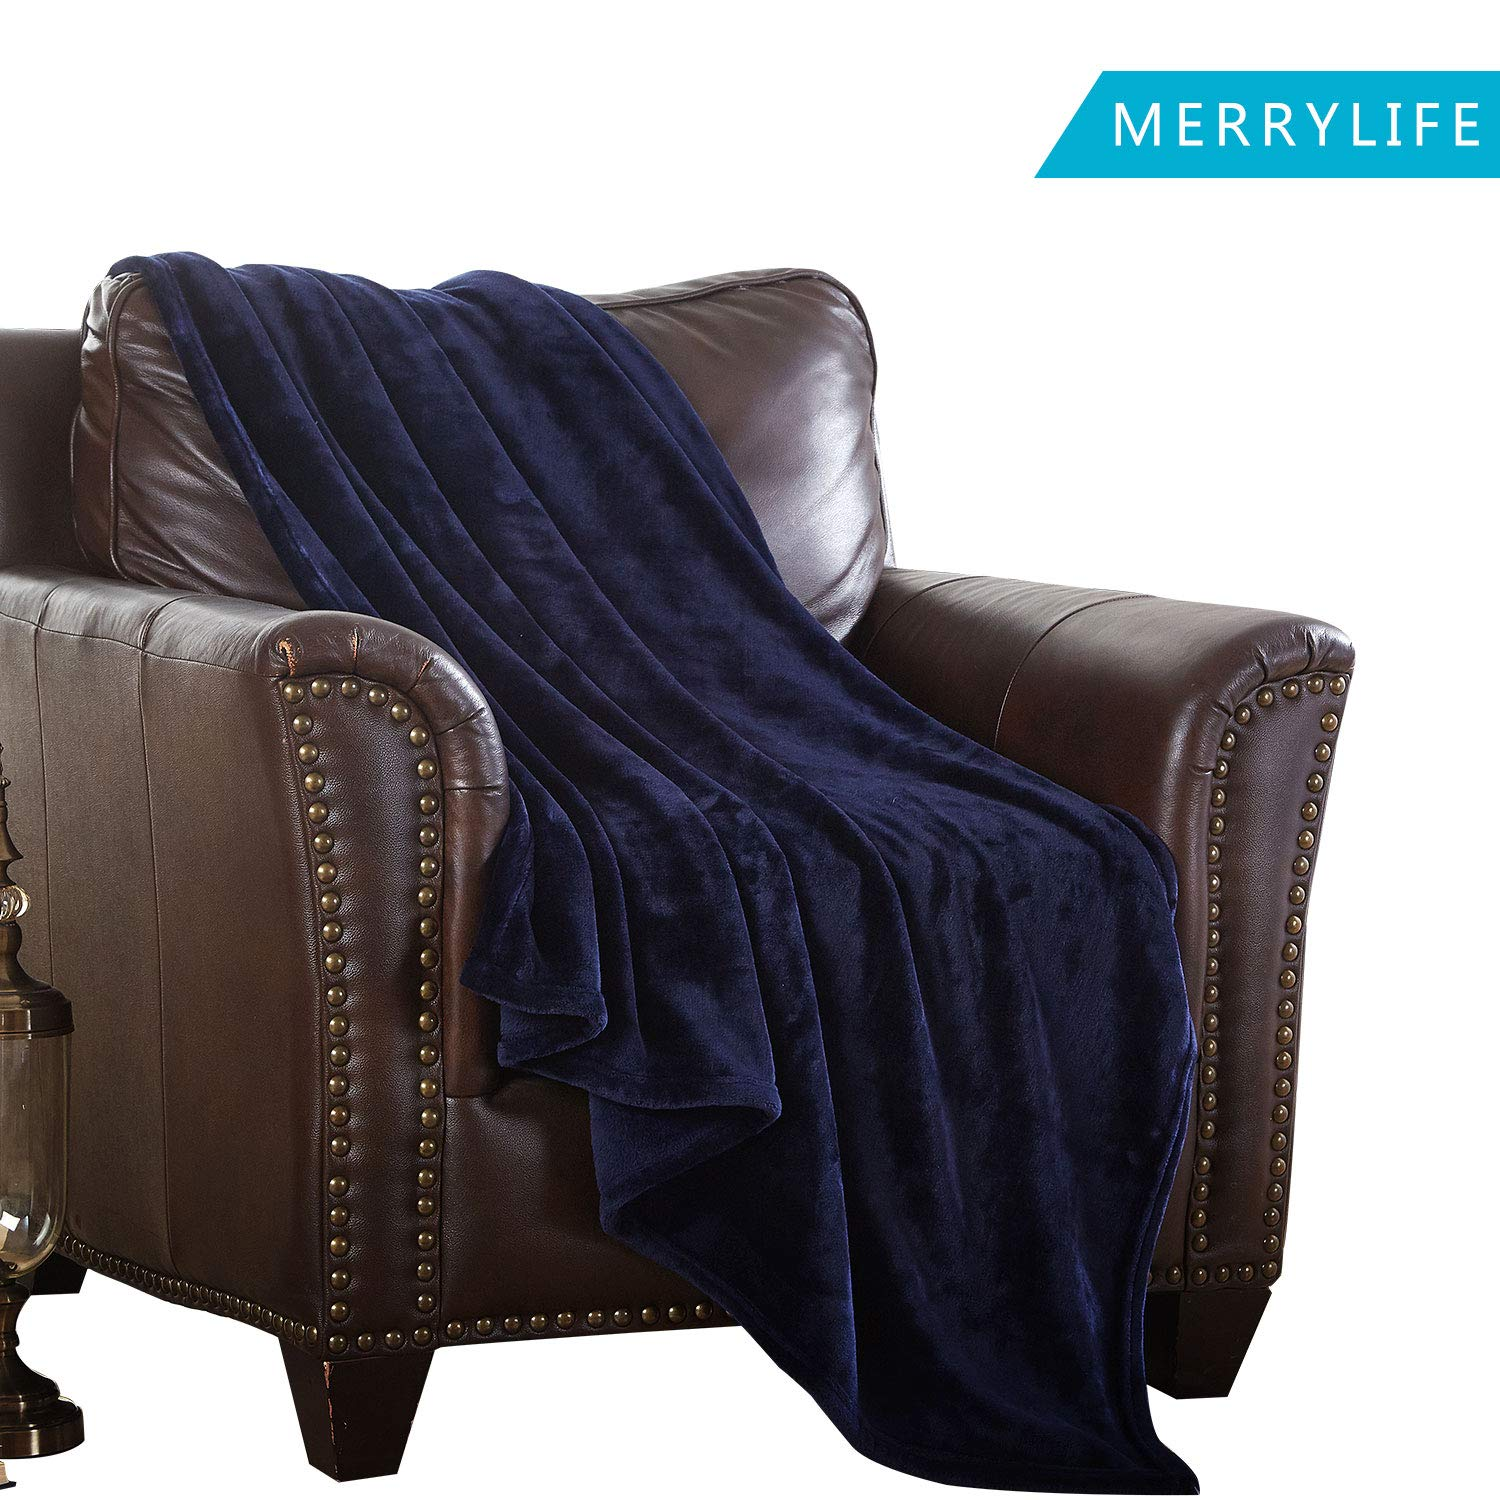 MERRYLIFE Decorative Throw Blanket Ultra-Plush Comfort | Soft, Colorful, Oversized | Home, Couch, Outdoor, Travel Use | Large Size (90'' 102'', Navy)